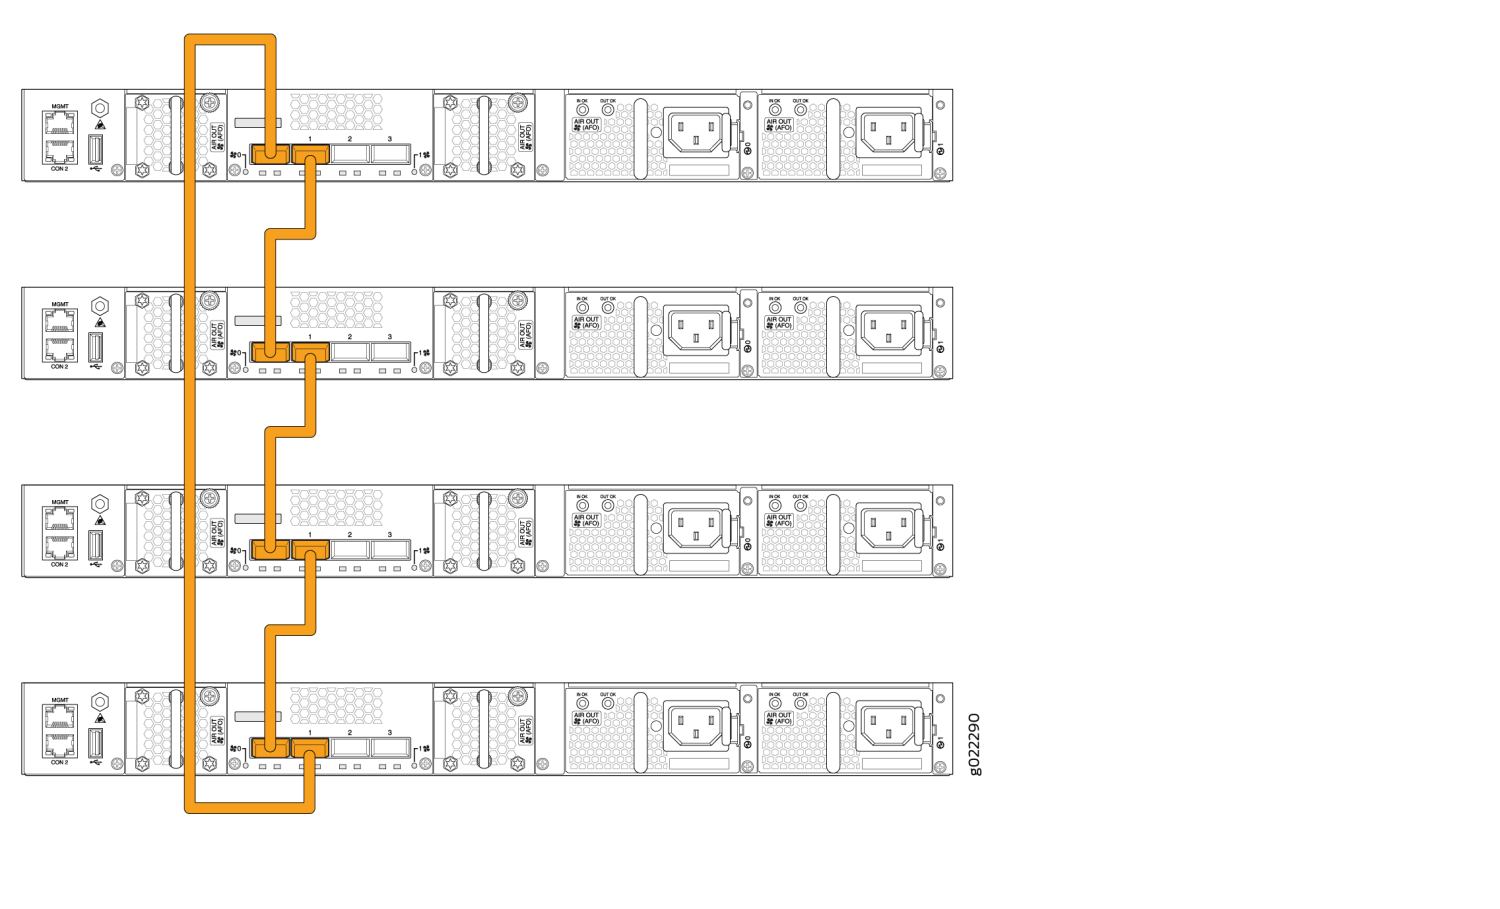 Four Member EX4300 Virtual Chassis in a Ring Topology Using Two QSFP+ Ports on Each Switch